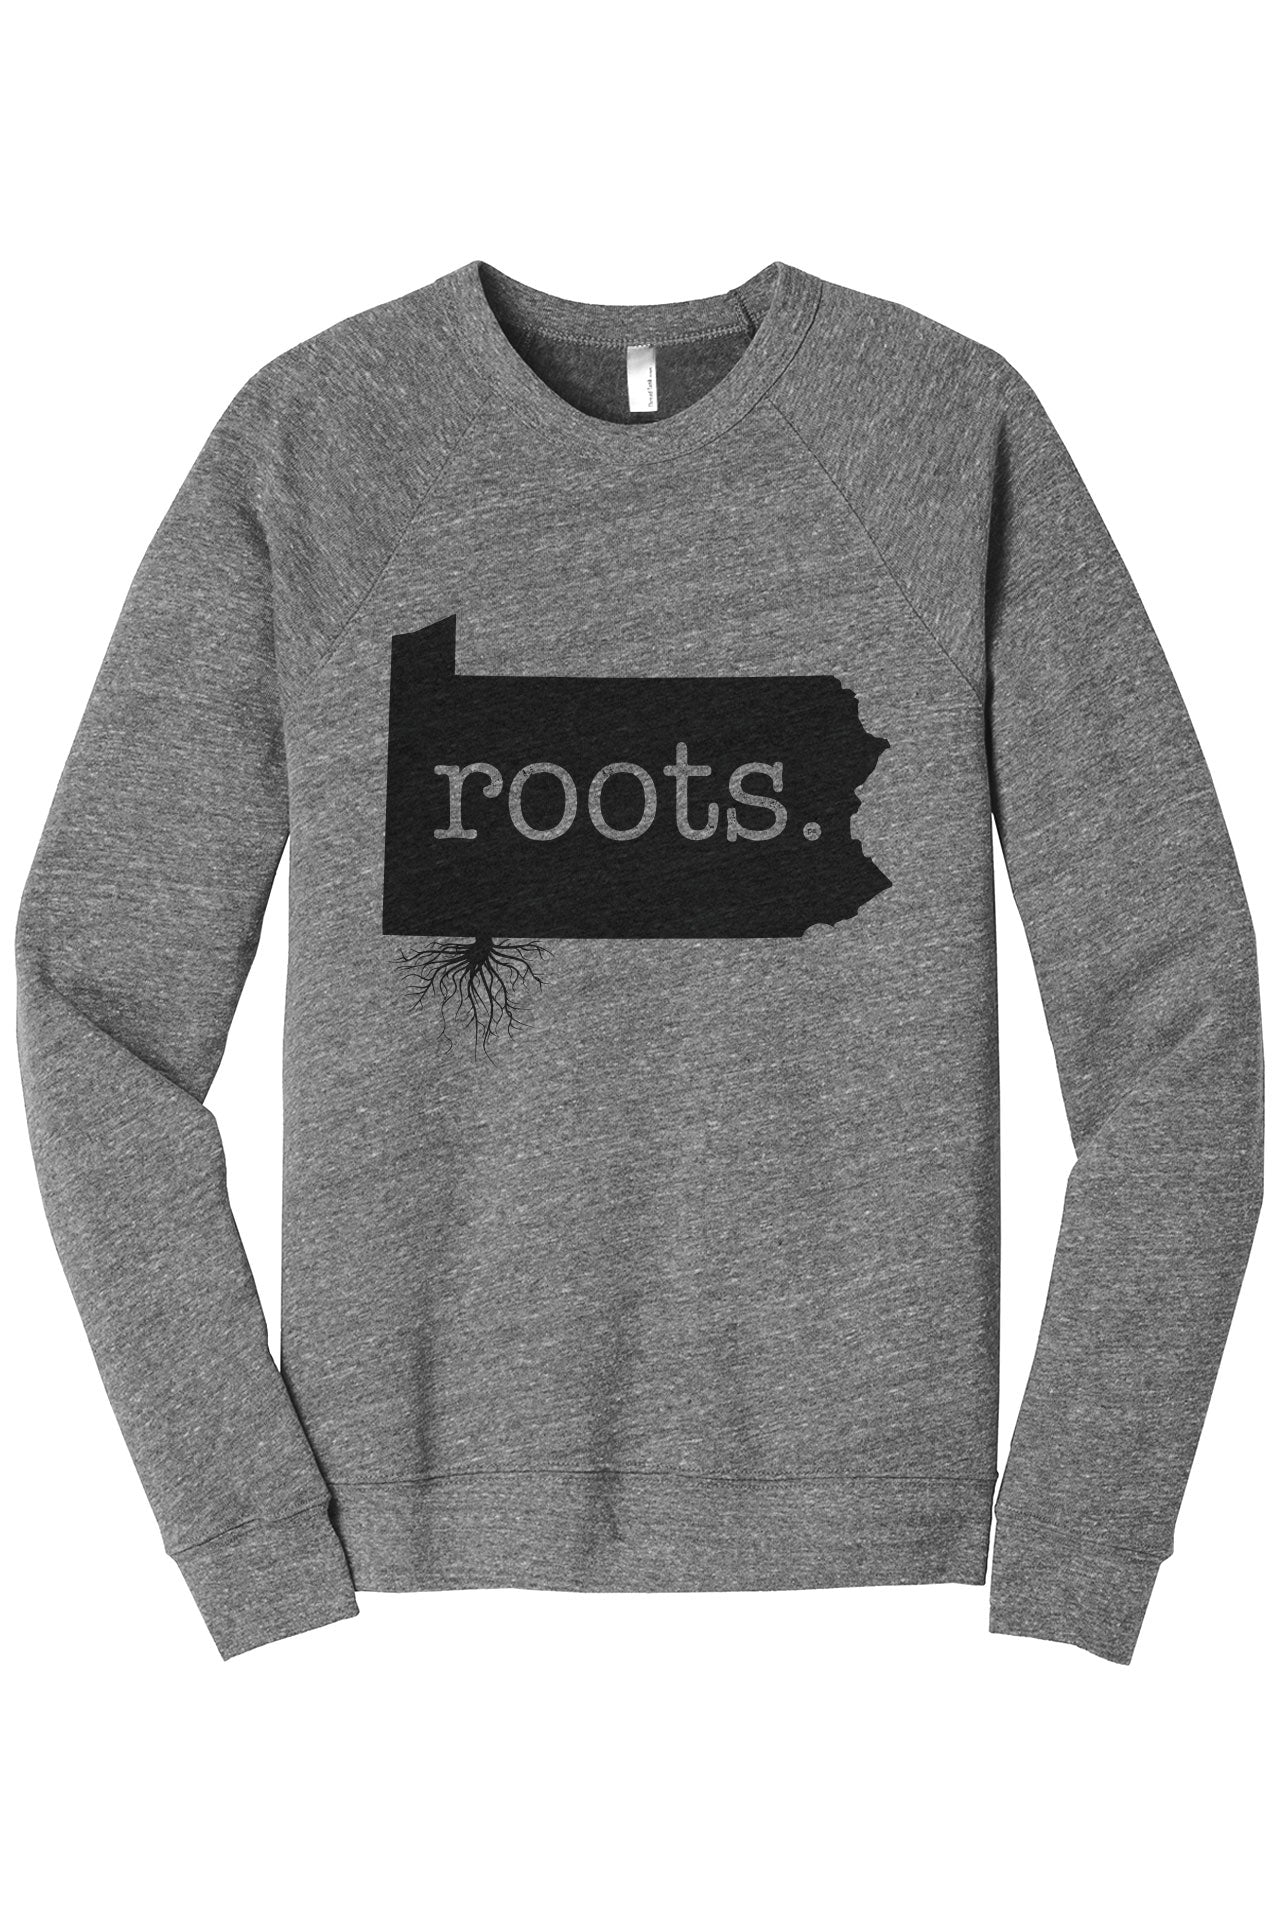 Home Roots State Pennsylvania PA Cozy Unisex Fleece Longsleeves Sweater Heather Grey FRONT